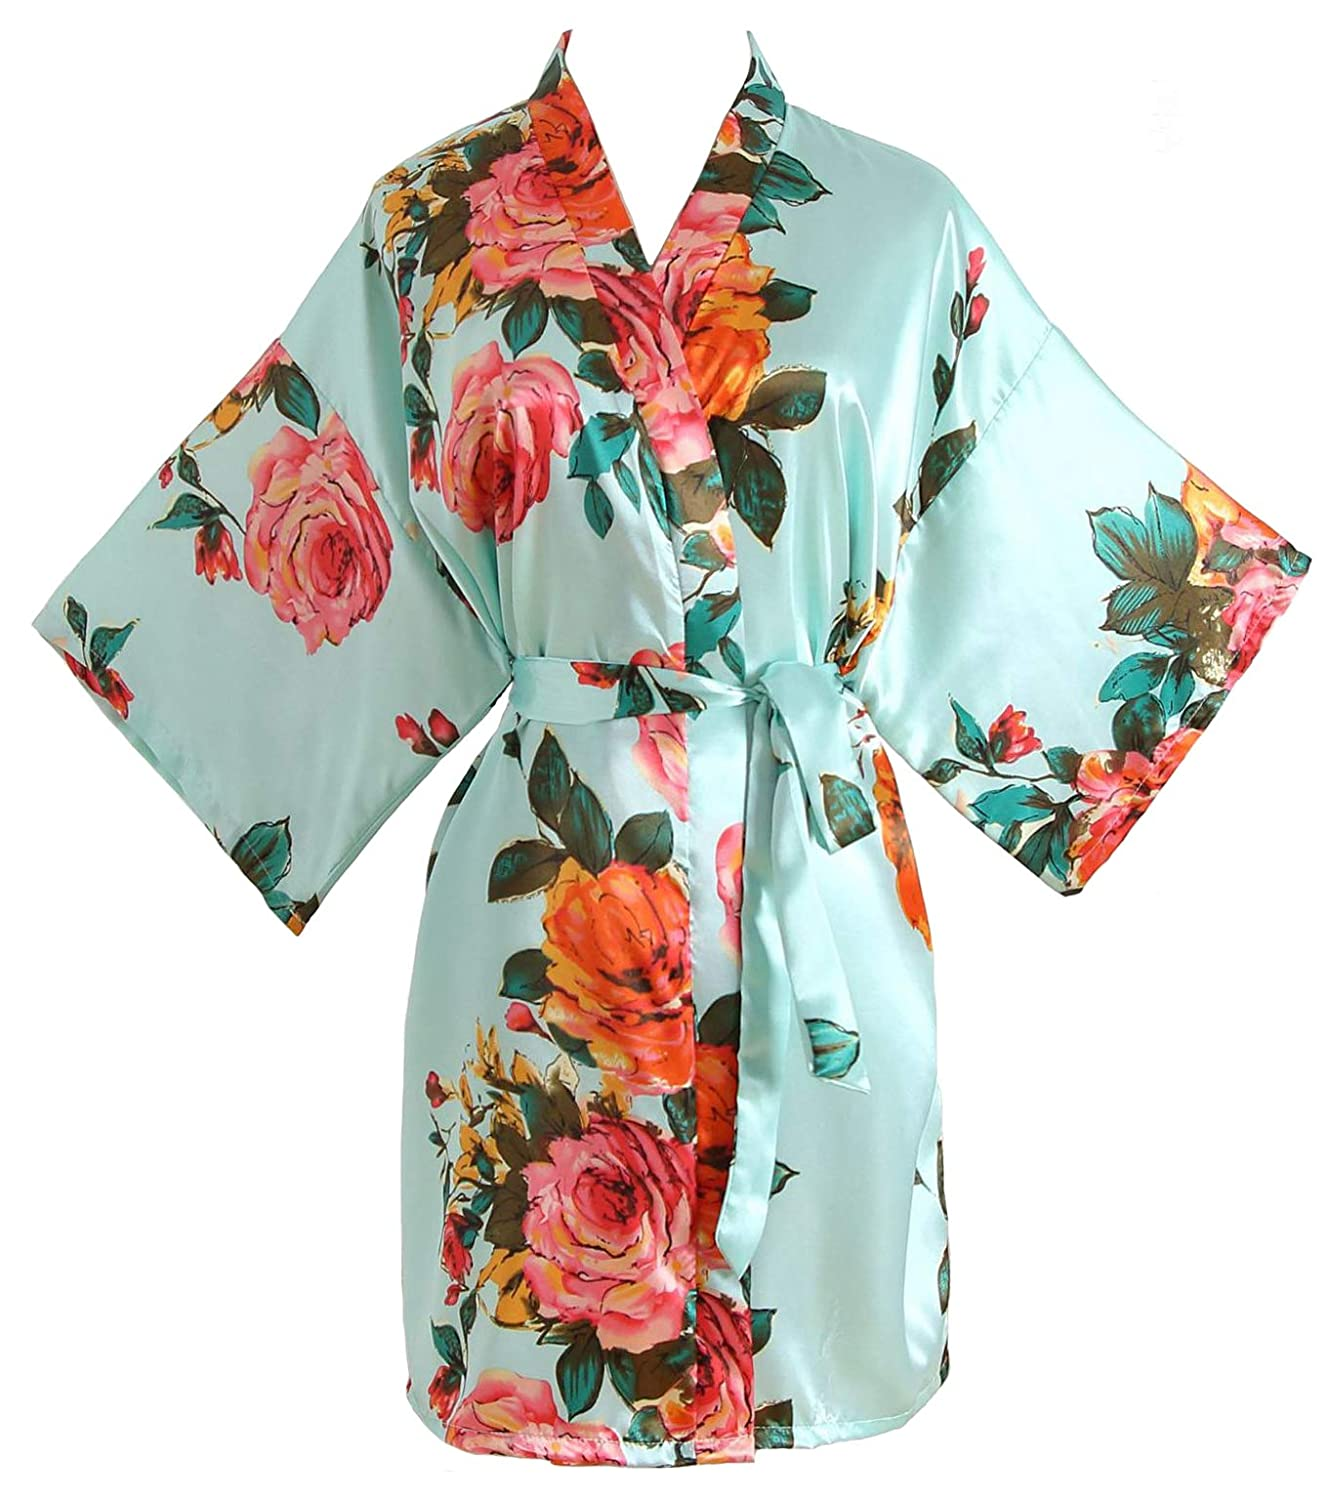 4508154f92cba0 Peony Floral Silk Kimono Robe Bridal Bridesmaid Robes Dressing Gown for  Women Light Blue at Amazon Women's Clothing store: